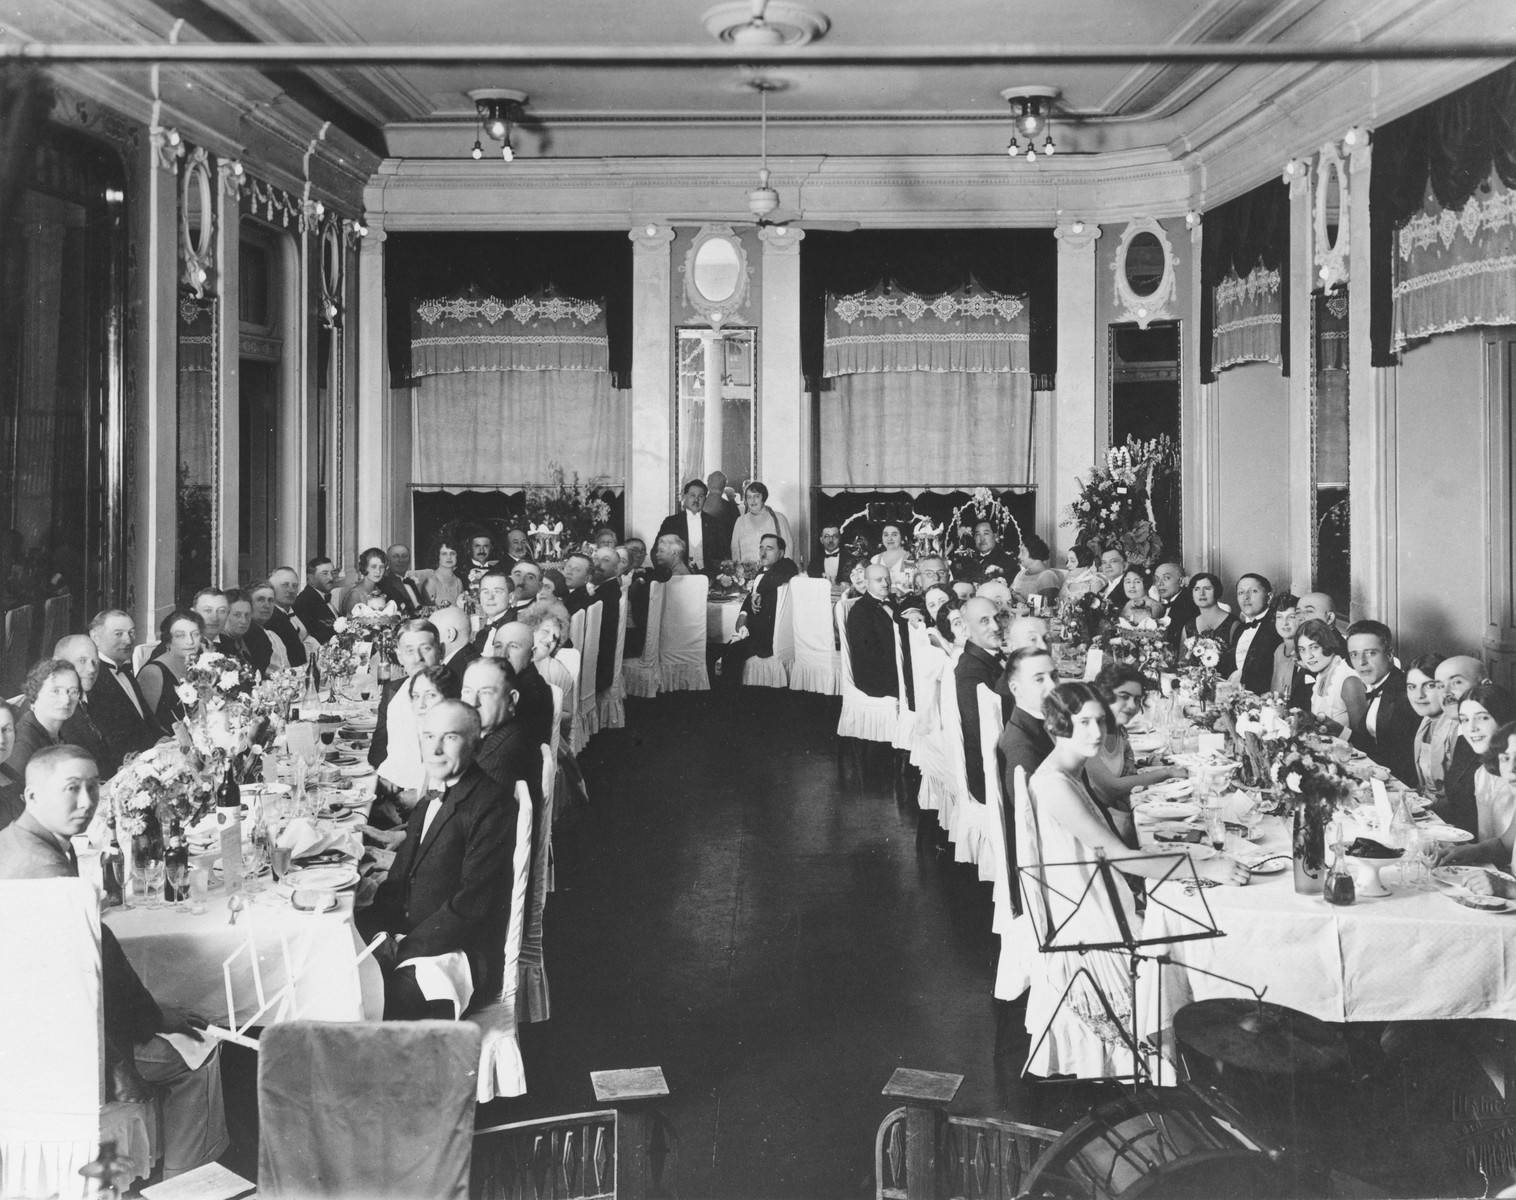 Guests attend a banquet in Harbin, China to celebrate the wedding anniversary of Isaac and Manya Soskin.  Isaac Soskin was the brother of Betia (Soskin) Faingersch.